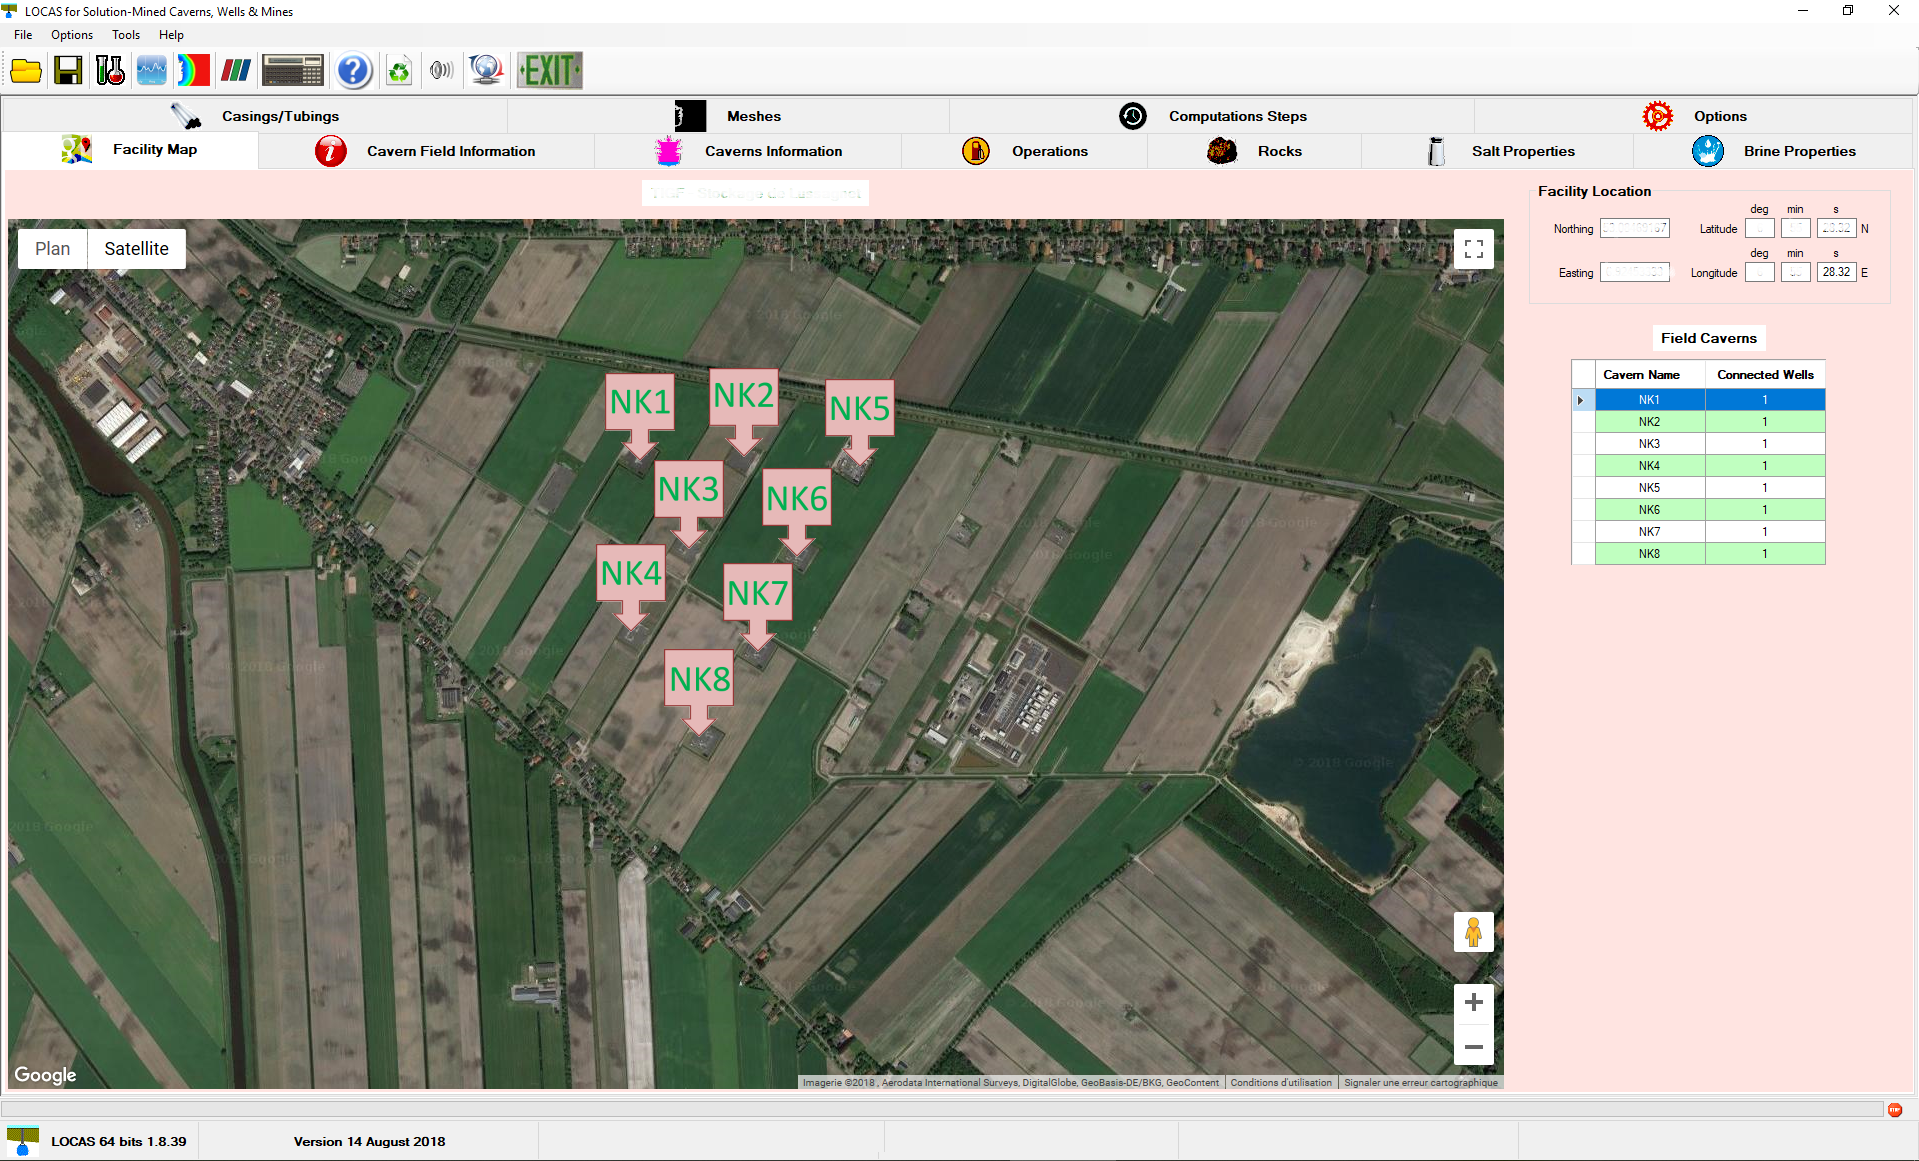 Facility overview through a Google map embedded